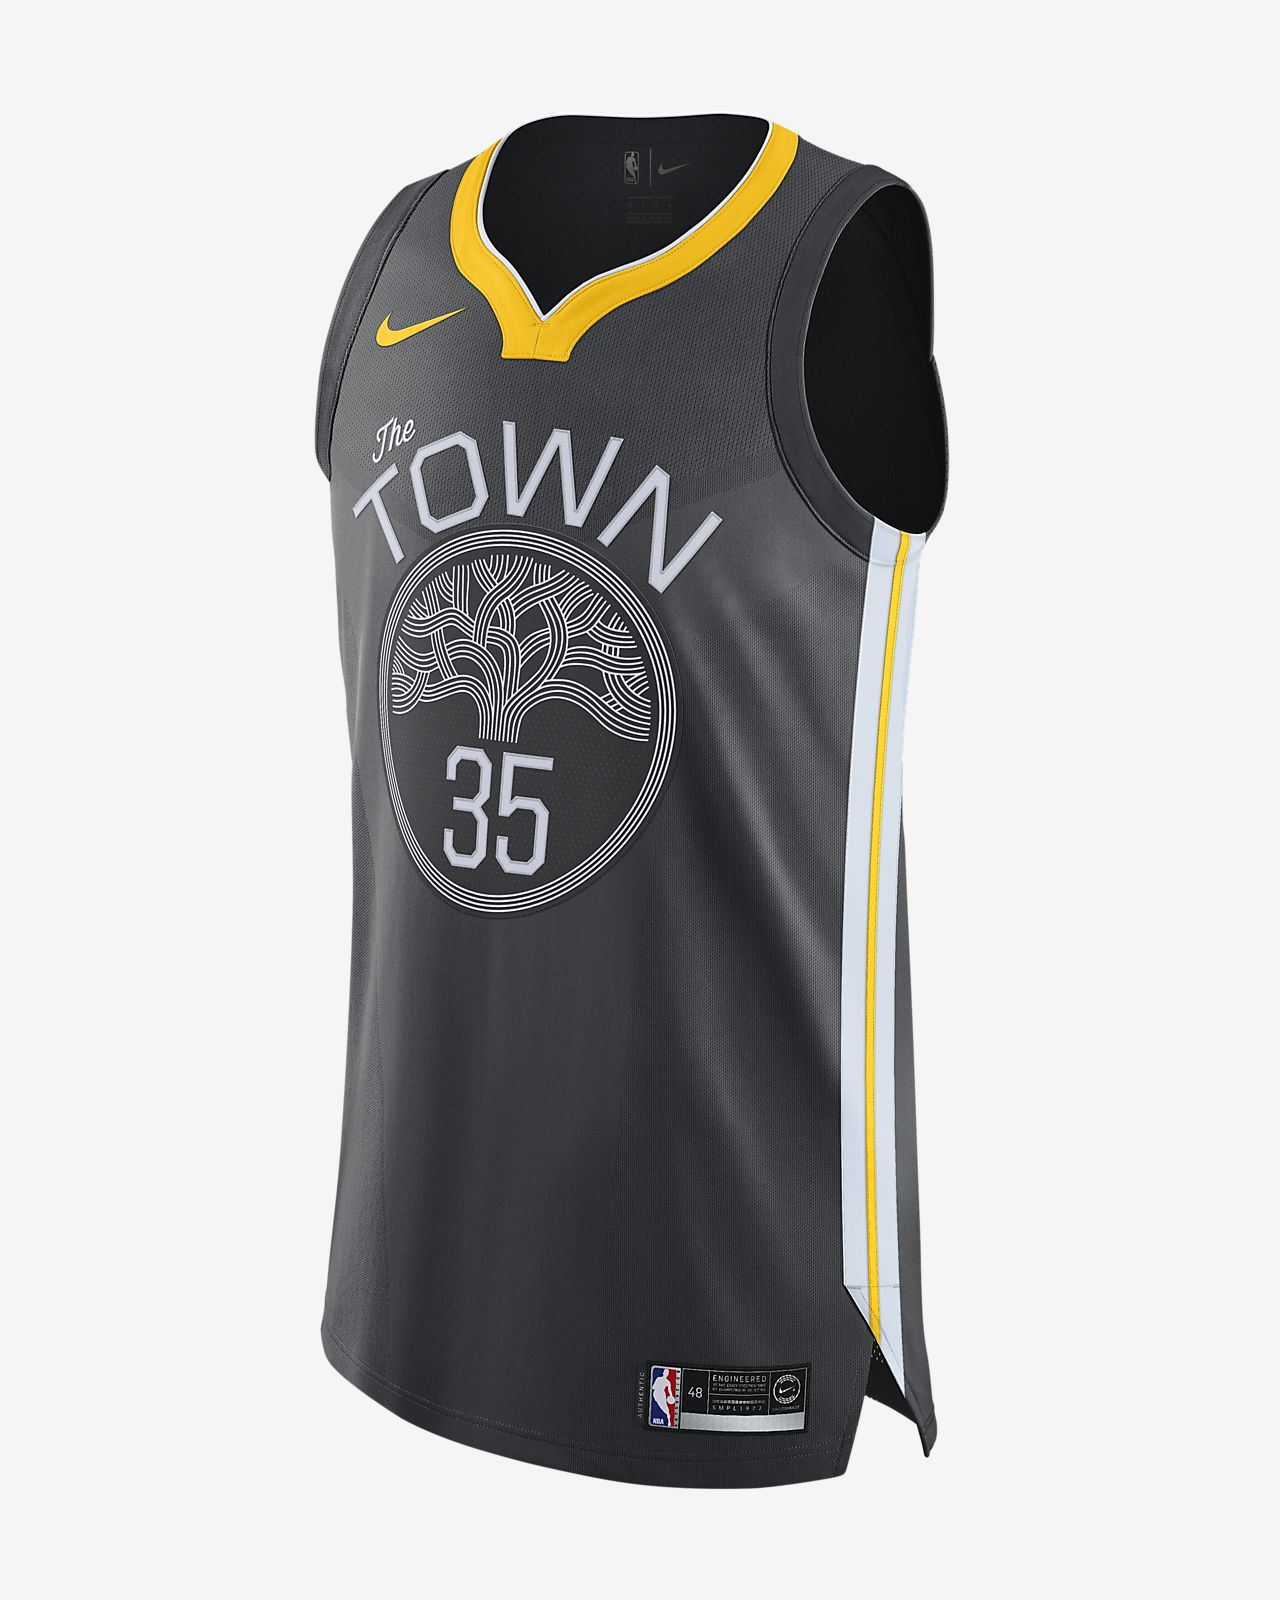 1978dca6bd9 Men s Nike NBA Connected Jersey. Kevin Durant Statement Edition Authentic  (Golden State Warriors)